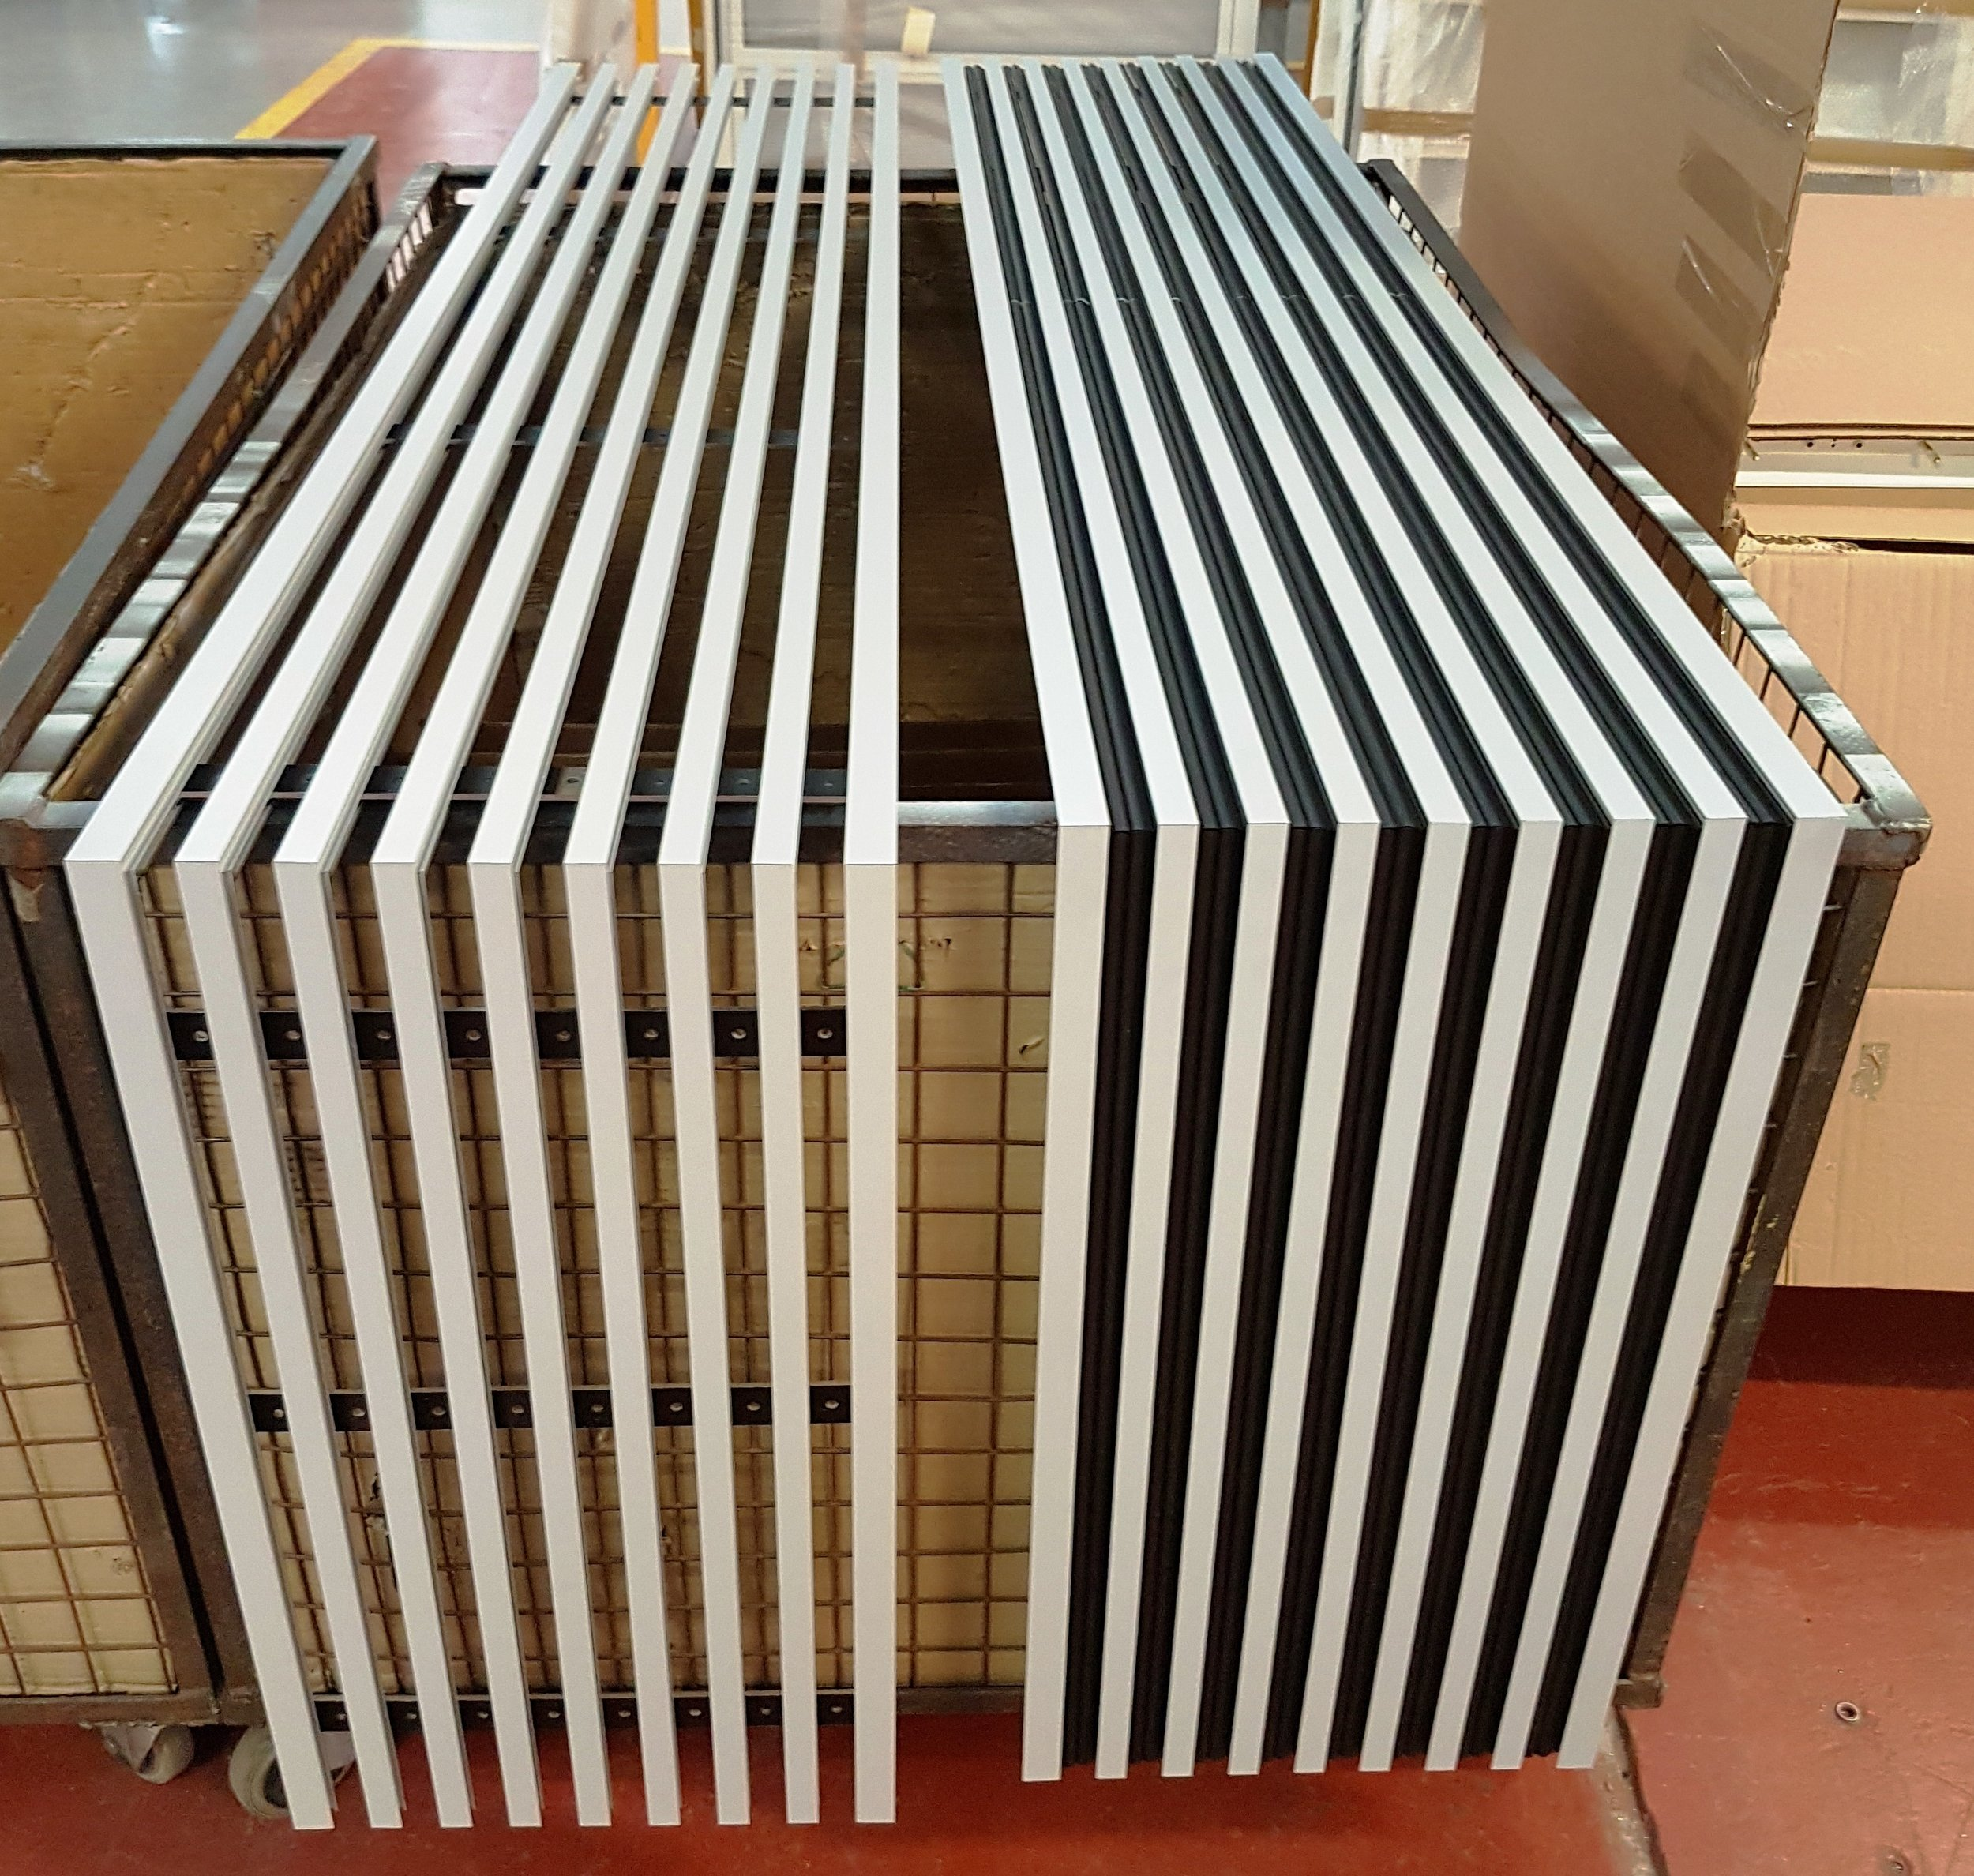 The slot diffusers manufactured to the bespoke specification, ready to be sent to site and installed.